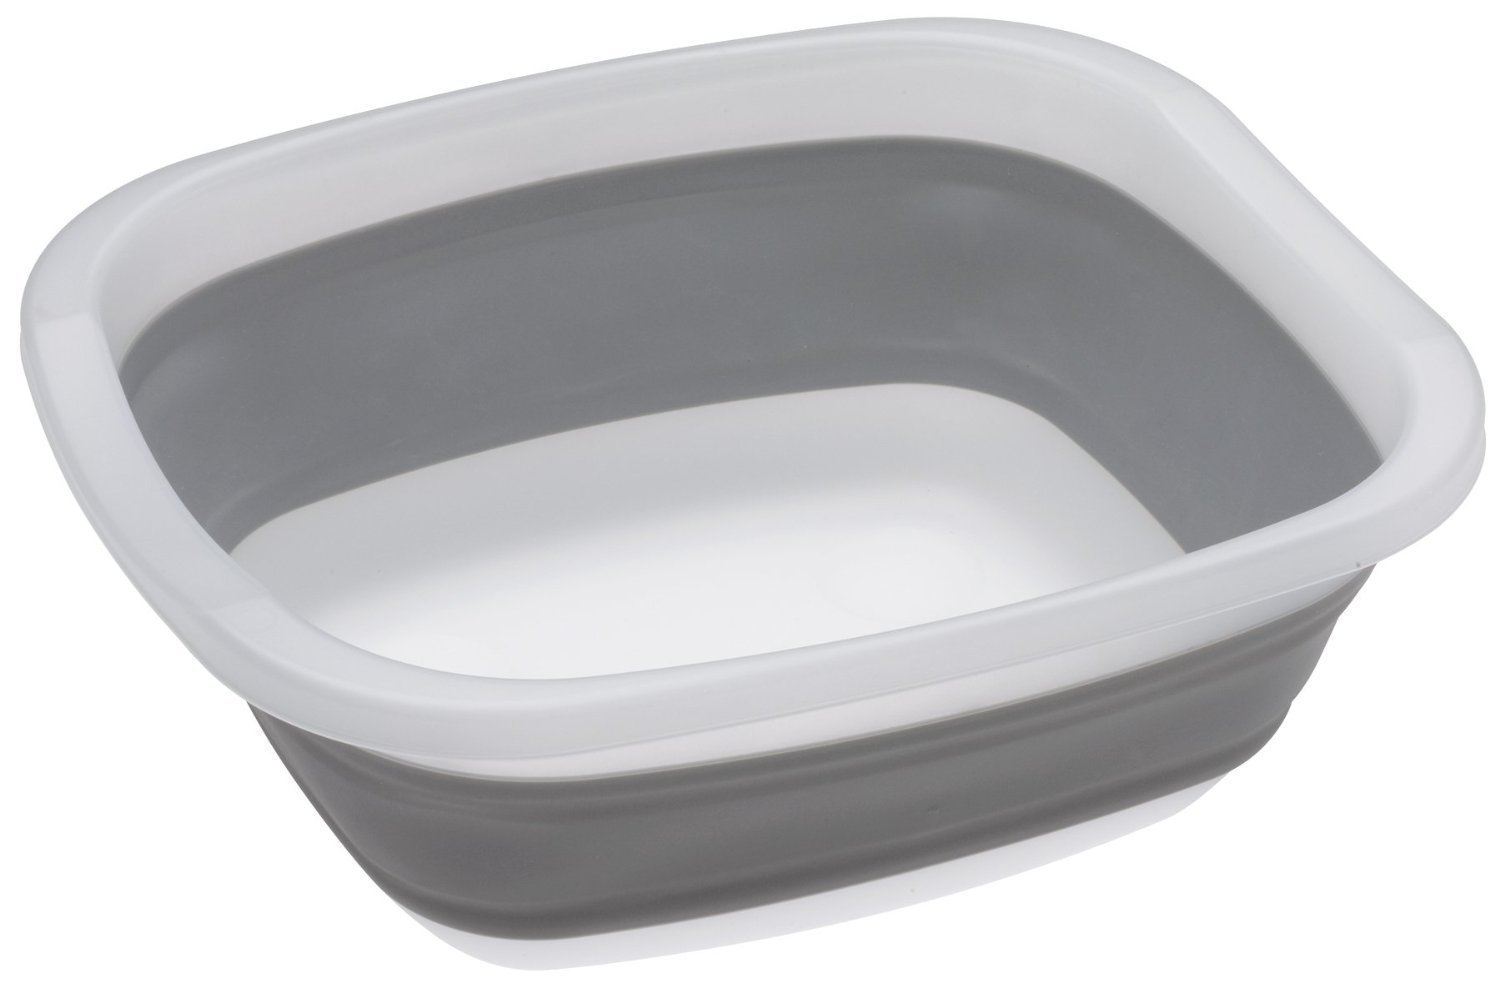 Prepworks by Progressive CDT-1 Collapsible Large Pop Up Portable, Washing Basin, Perfect for RV Sink, Best Dish Tub